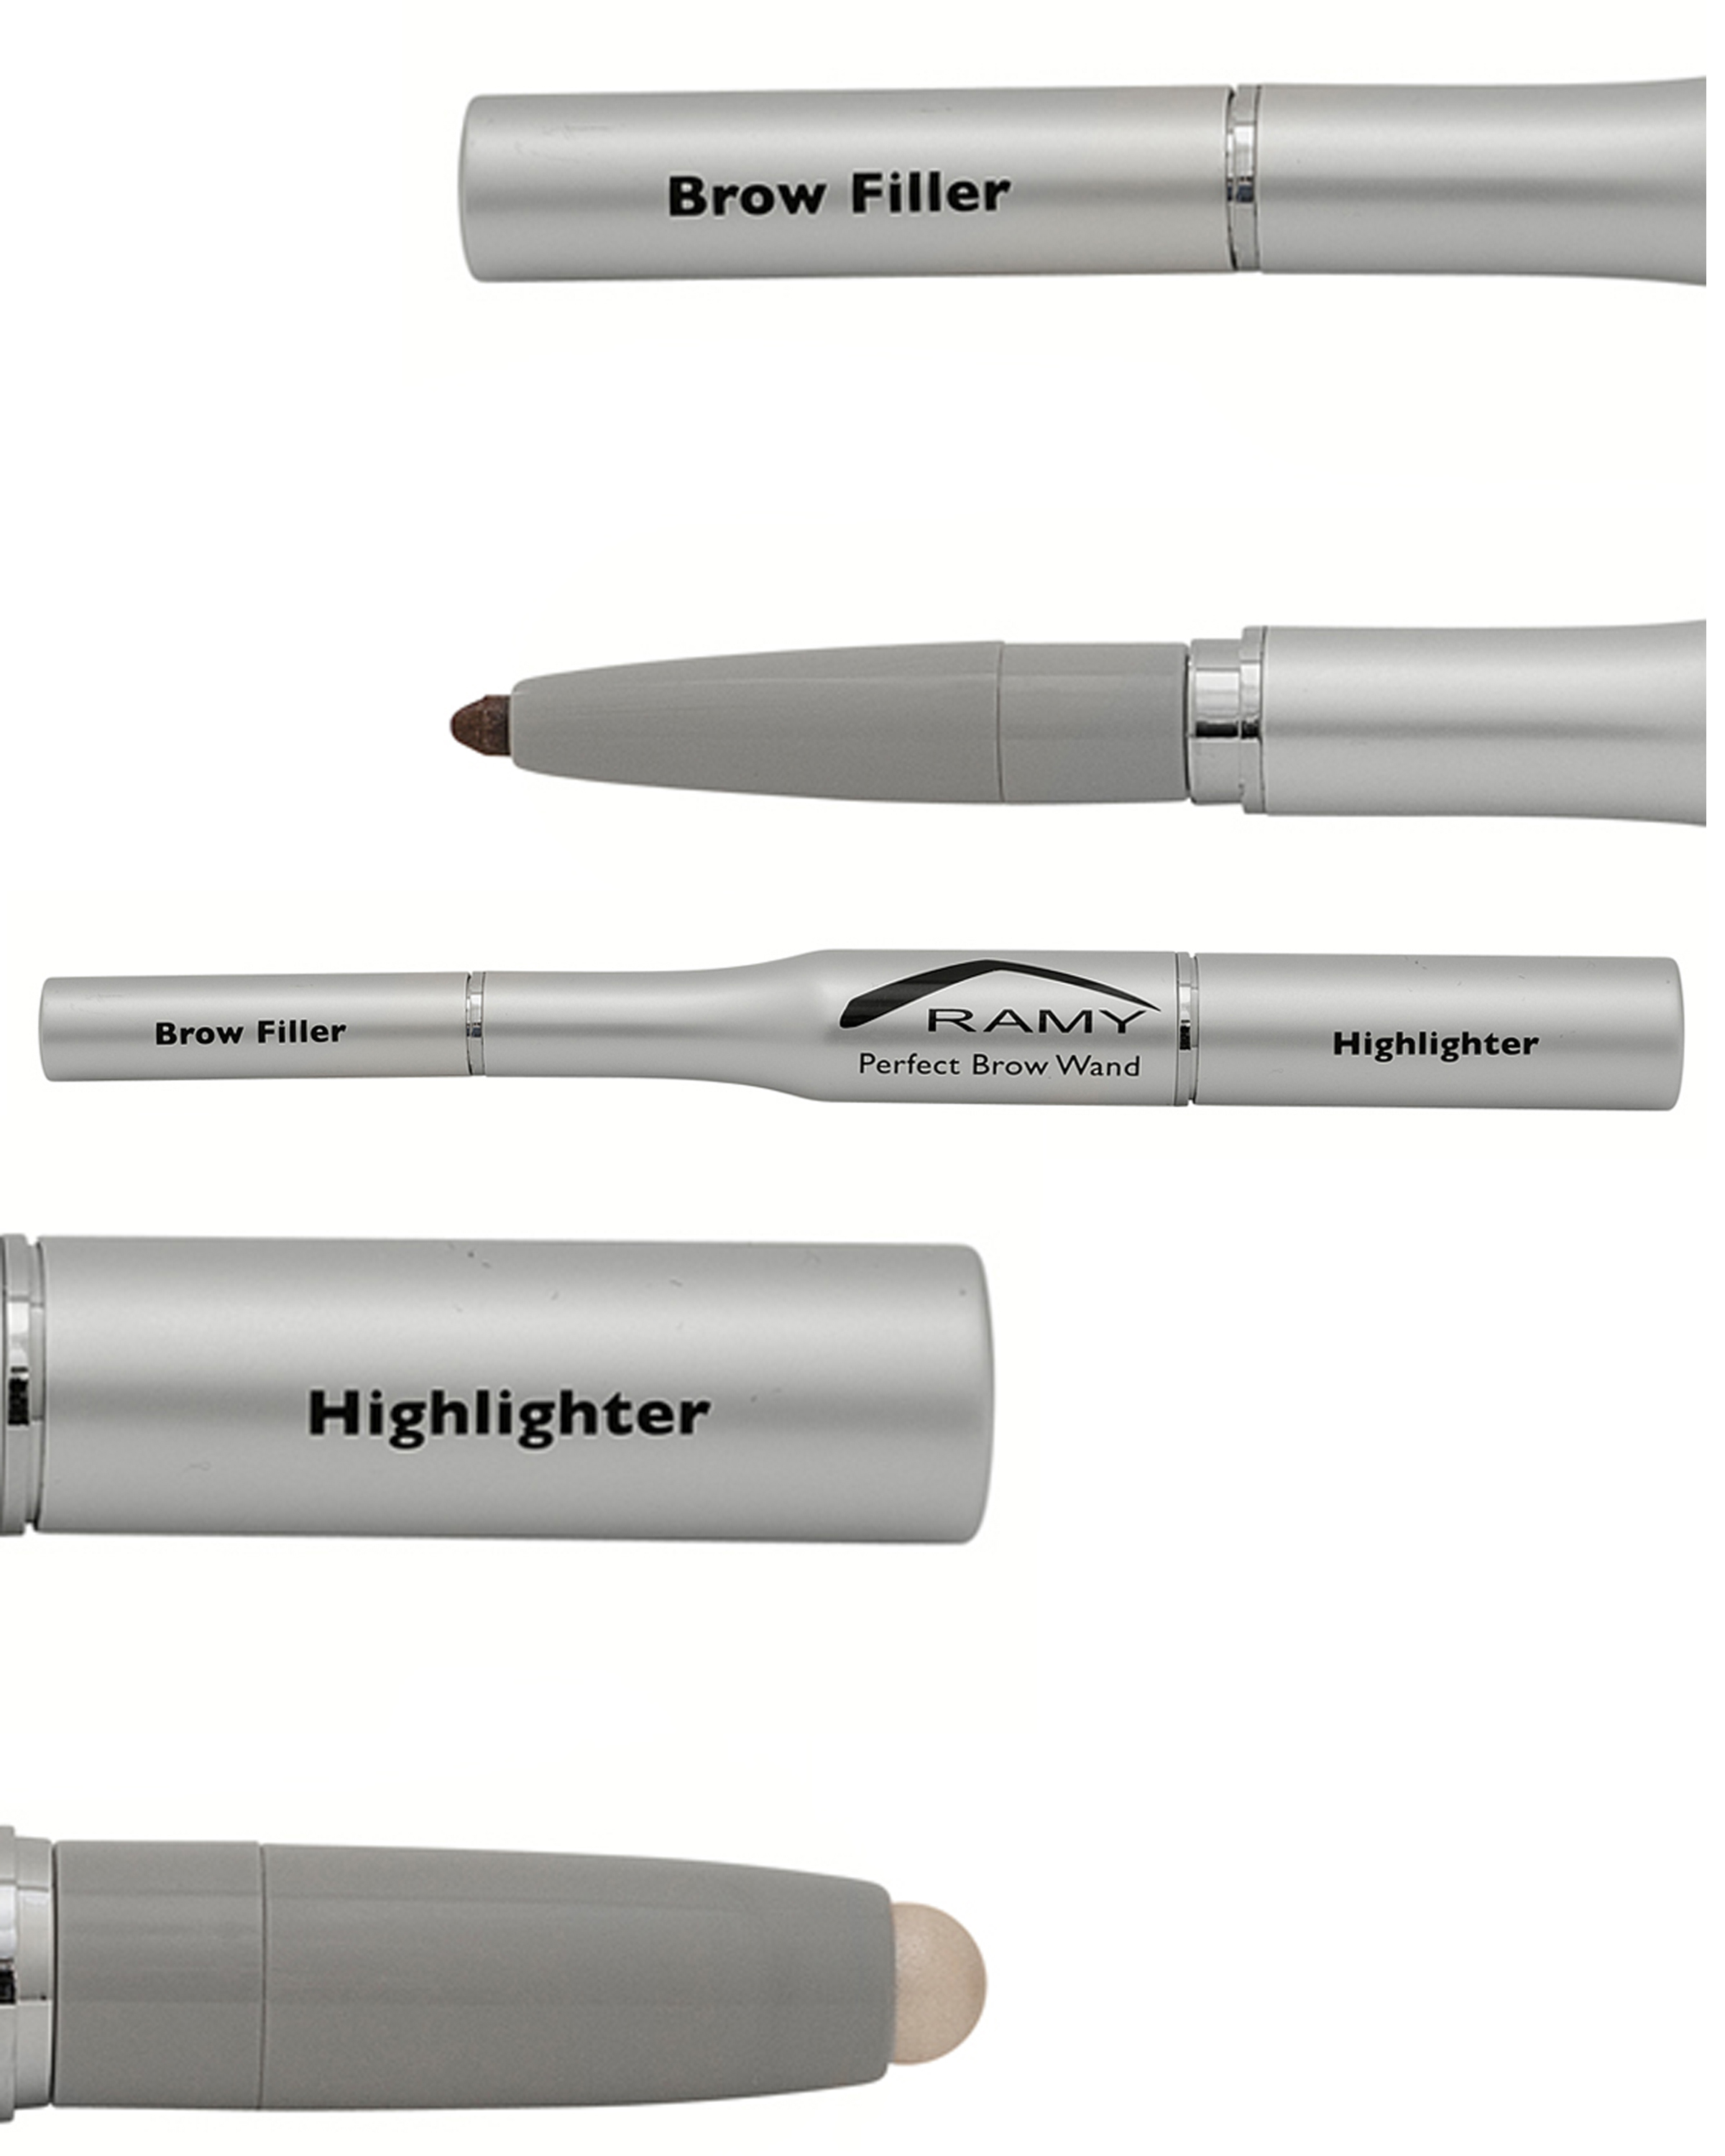 perfect-brow-wand-edited-1.jpg